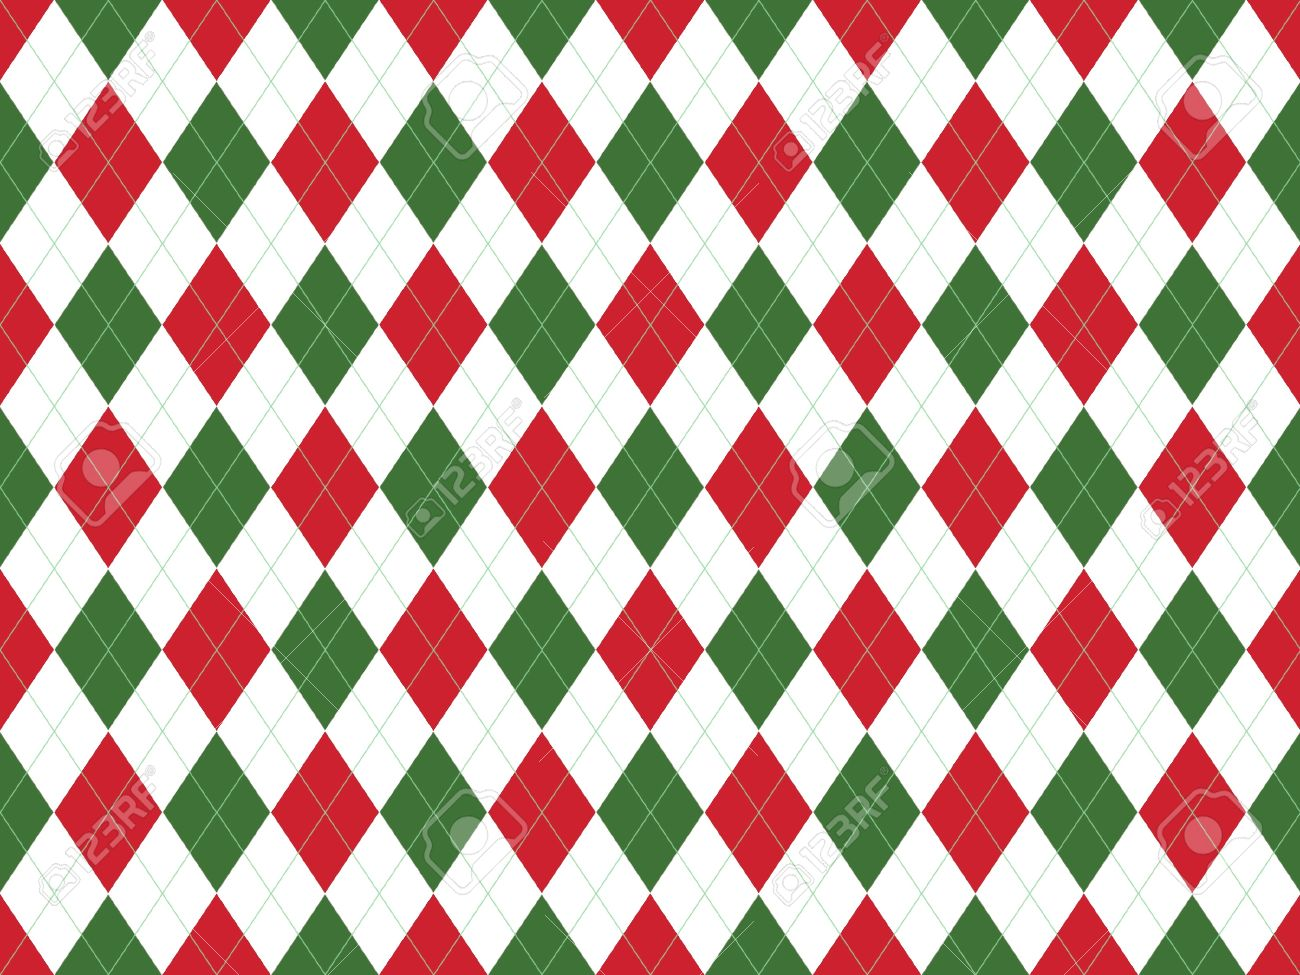 Pics photos merry christmas argyle twitter backgrounds - Christmas Seamless Argyle Pattern In Green And Red Rhombuses Stock Photo 8802038